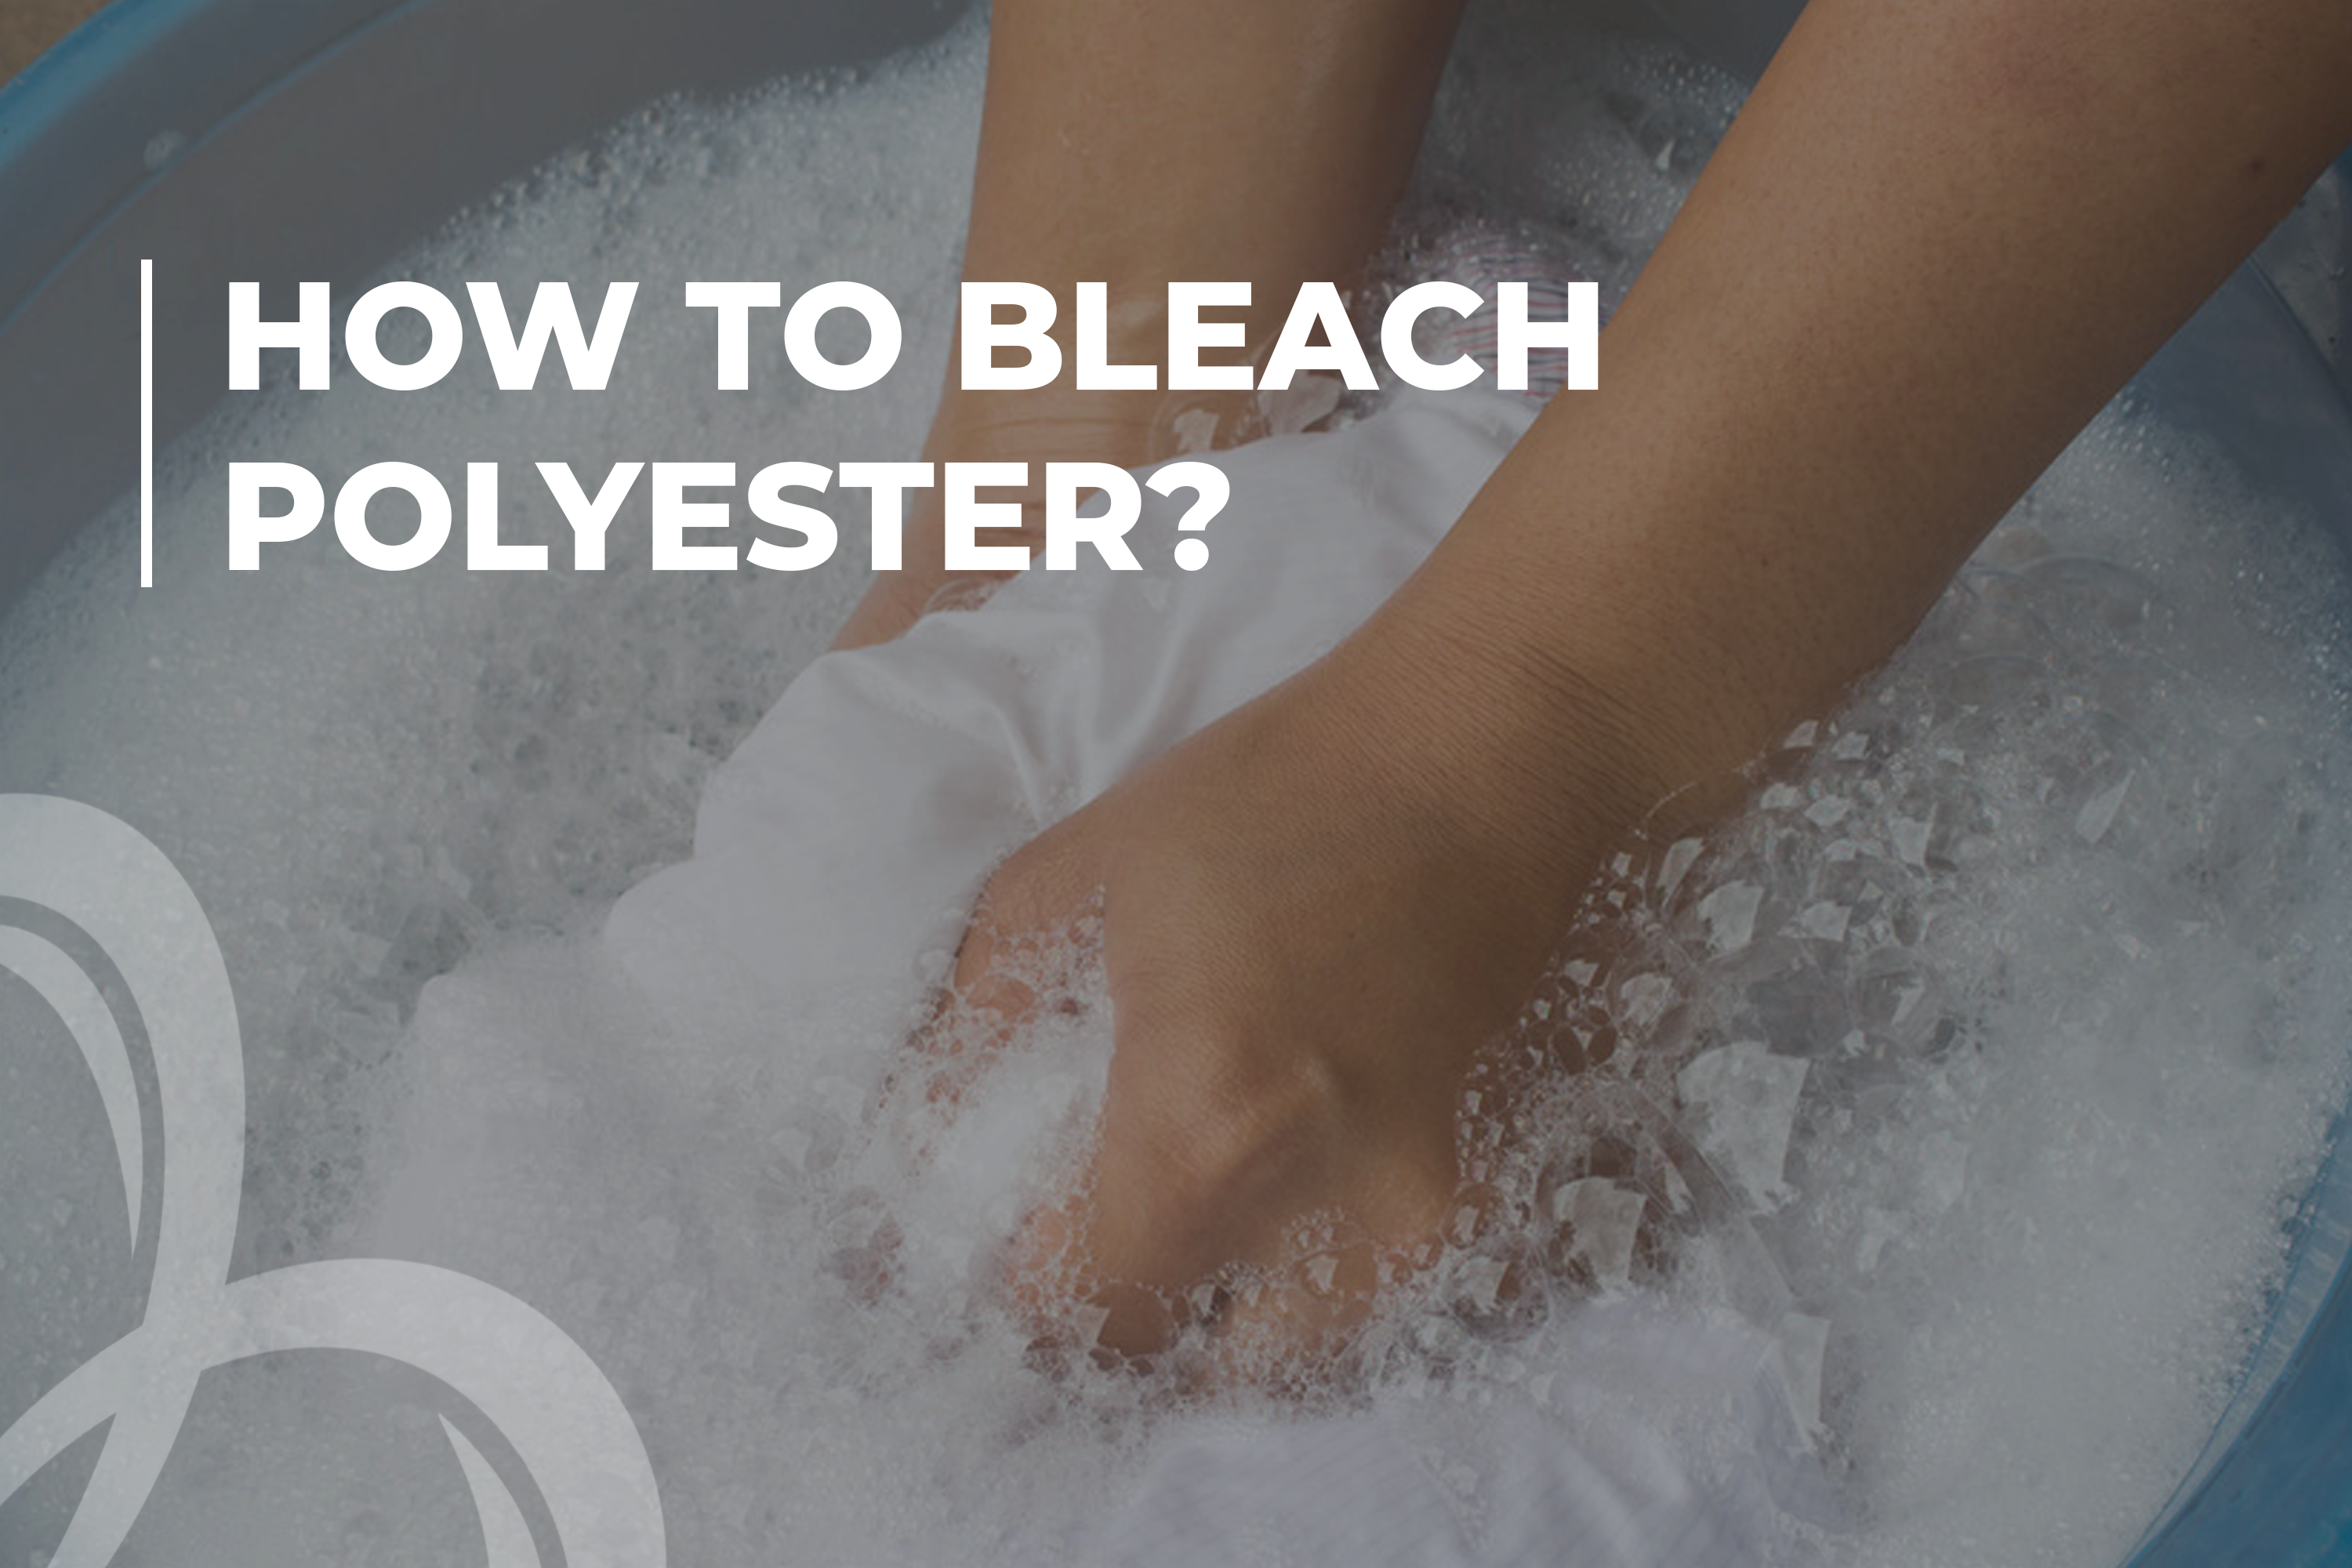 How to Bleach Polyester